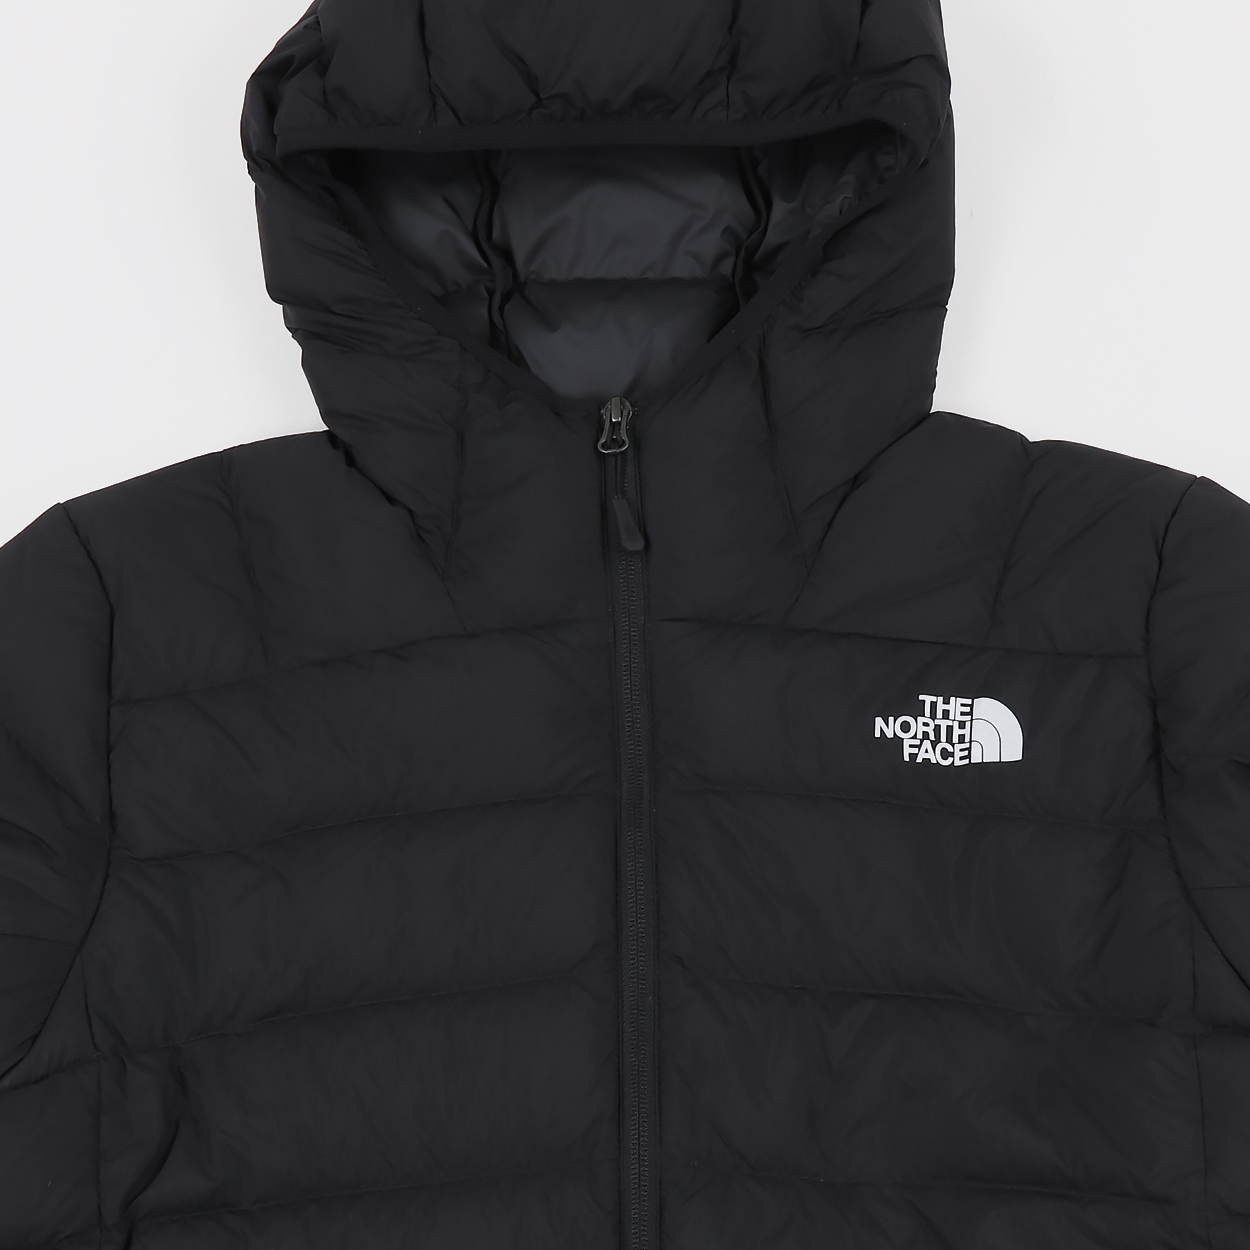 A lightweight and super warm jacket that is insulated using 600-fill-power  RDS goose down fbfb81d9e